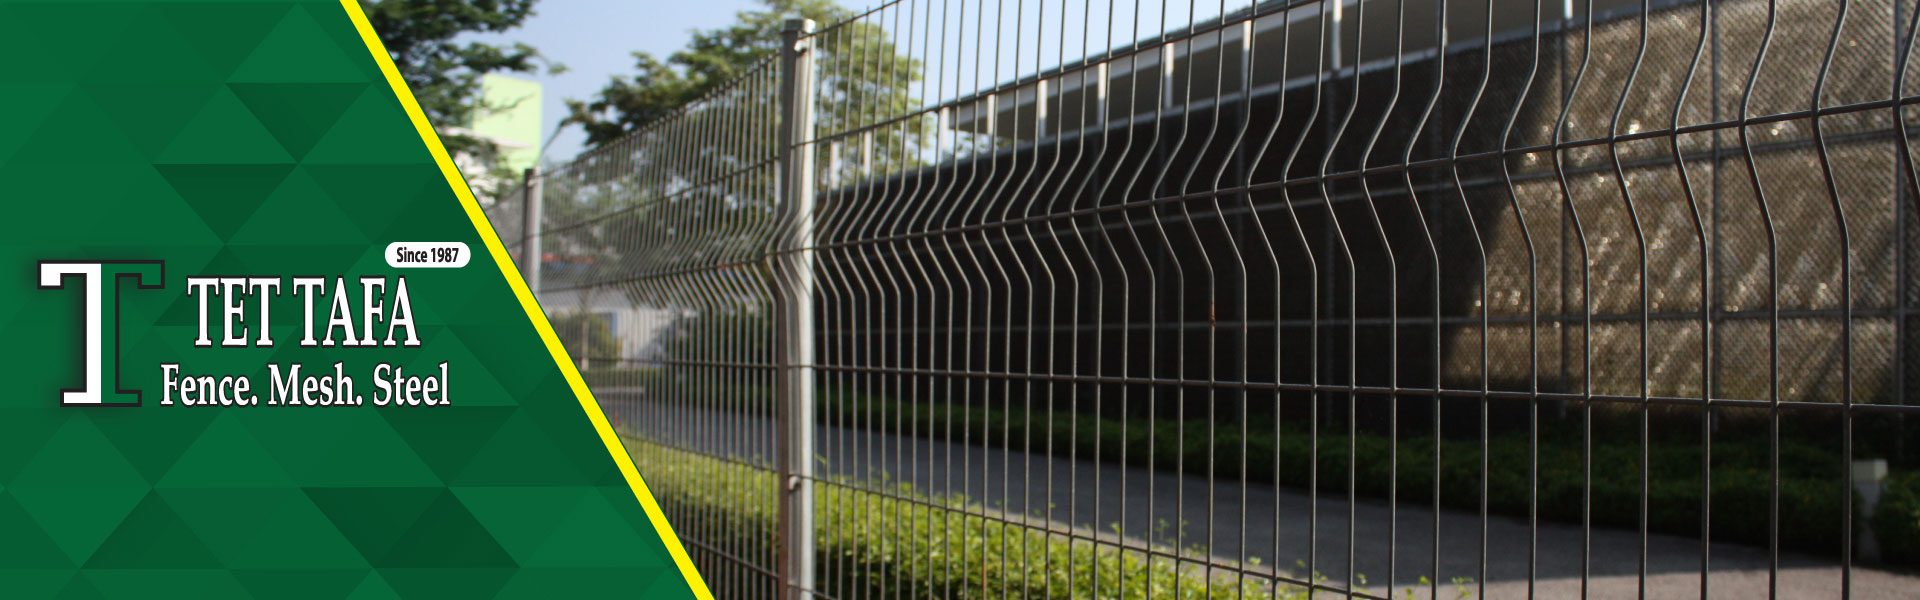 High Security Anti Climb Fence Manufacturer in Malaysia | TET Tafa